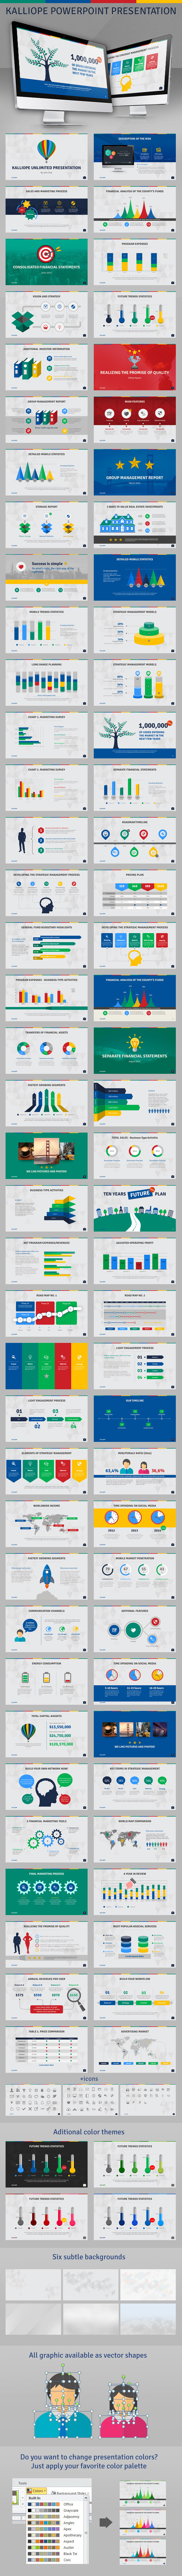 GraphicRiver Kalliope PowerPoint Template 9154573